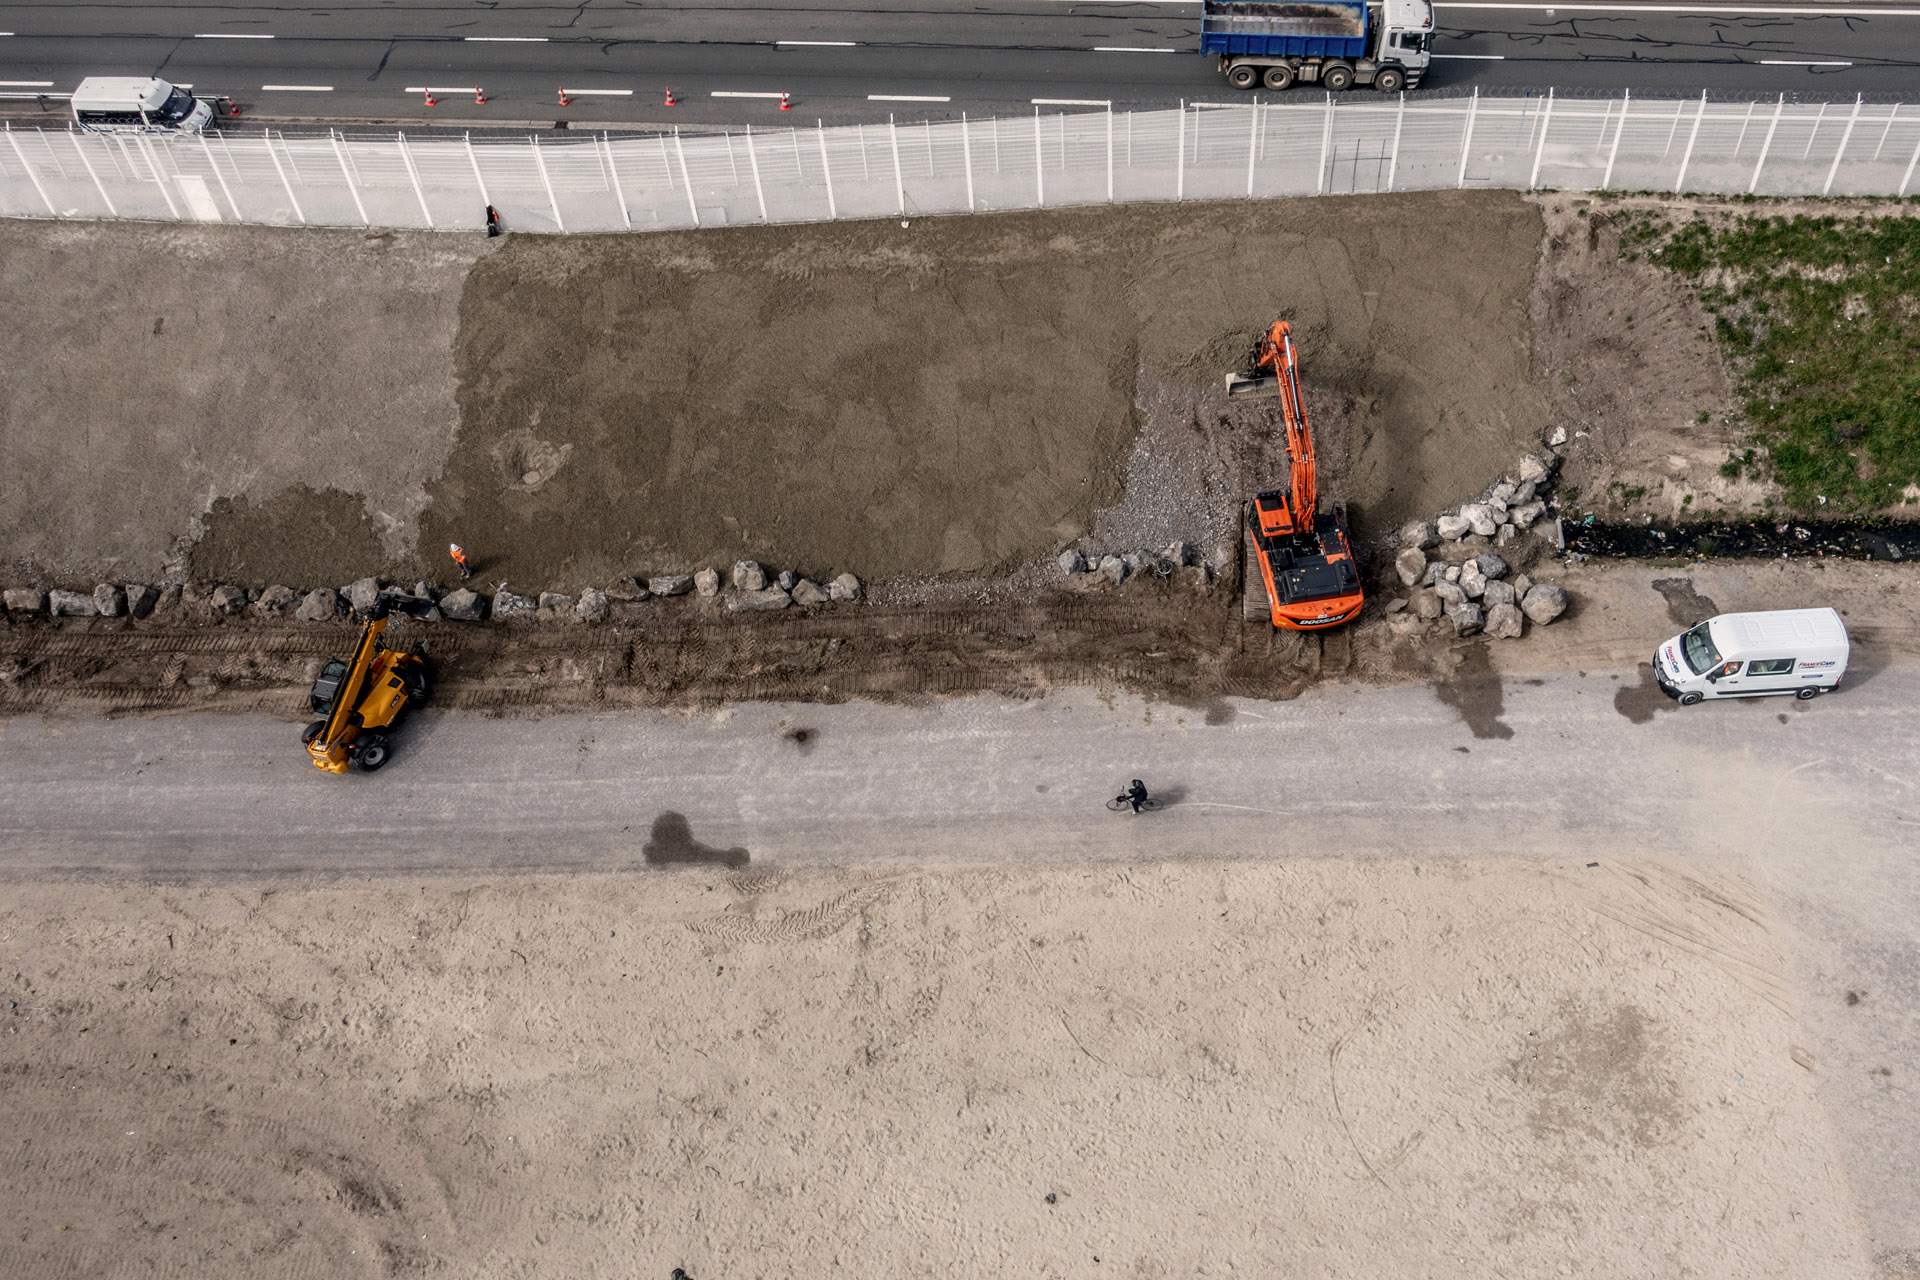 Workers maintain the Calais fence.